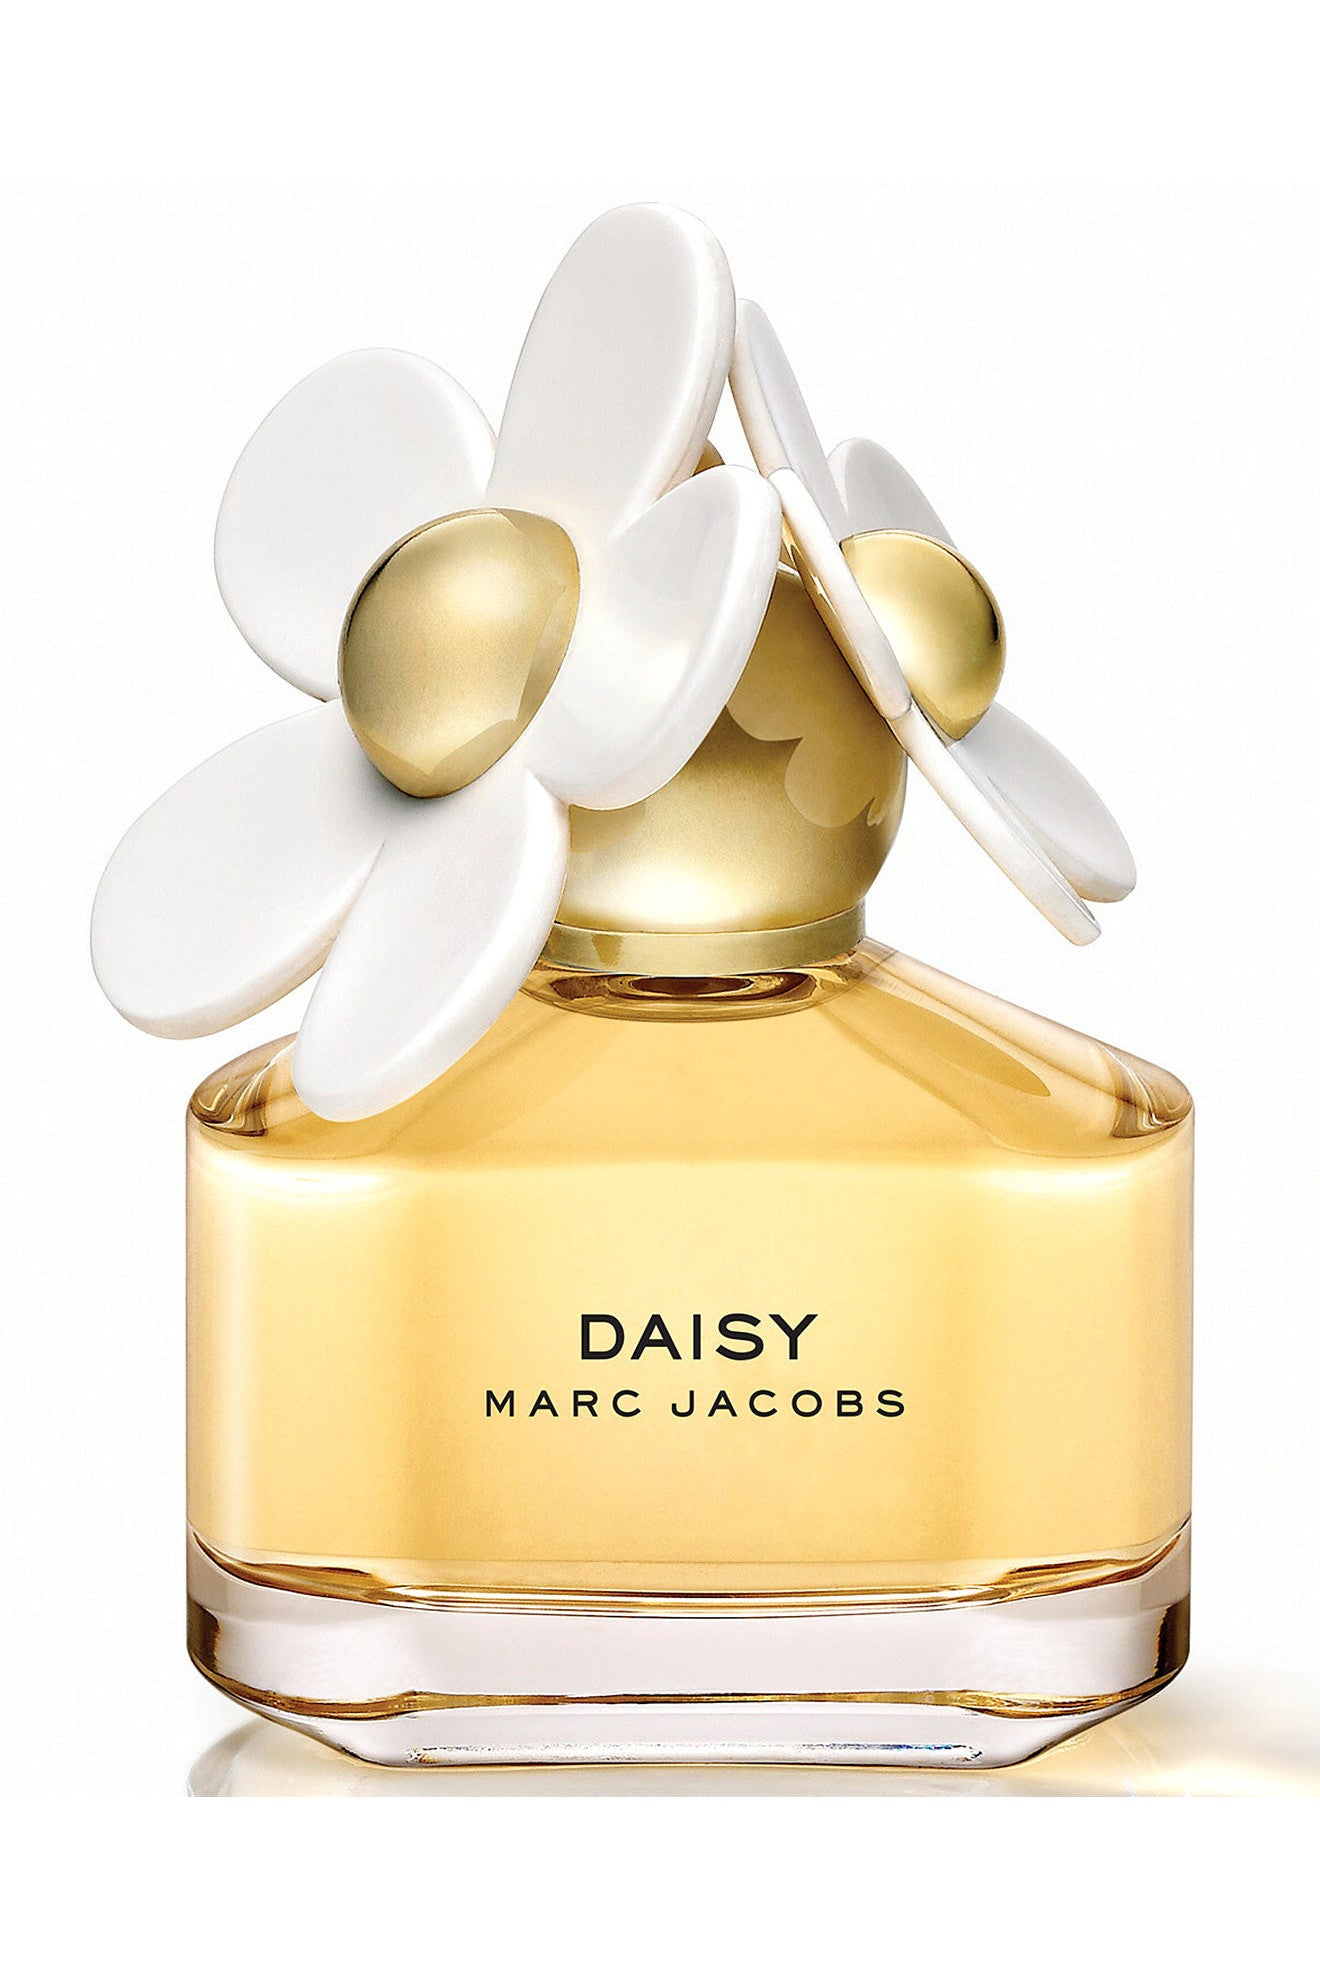 Daisy Perfume | Marc Jacobs - The Loft Boutique - Gifts  - 1